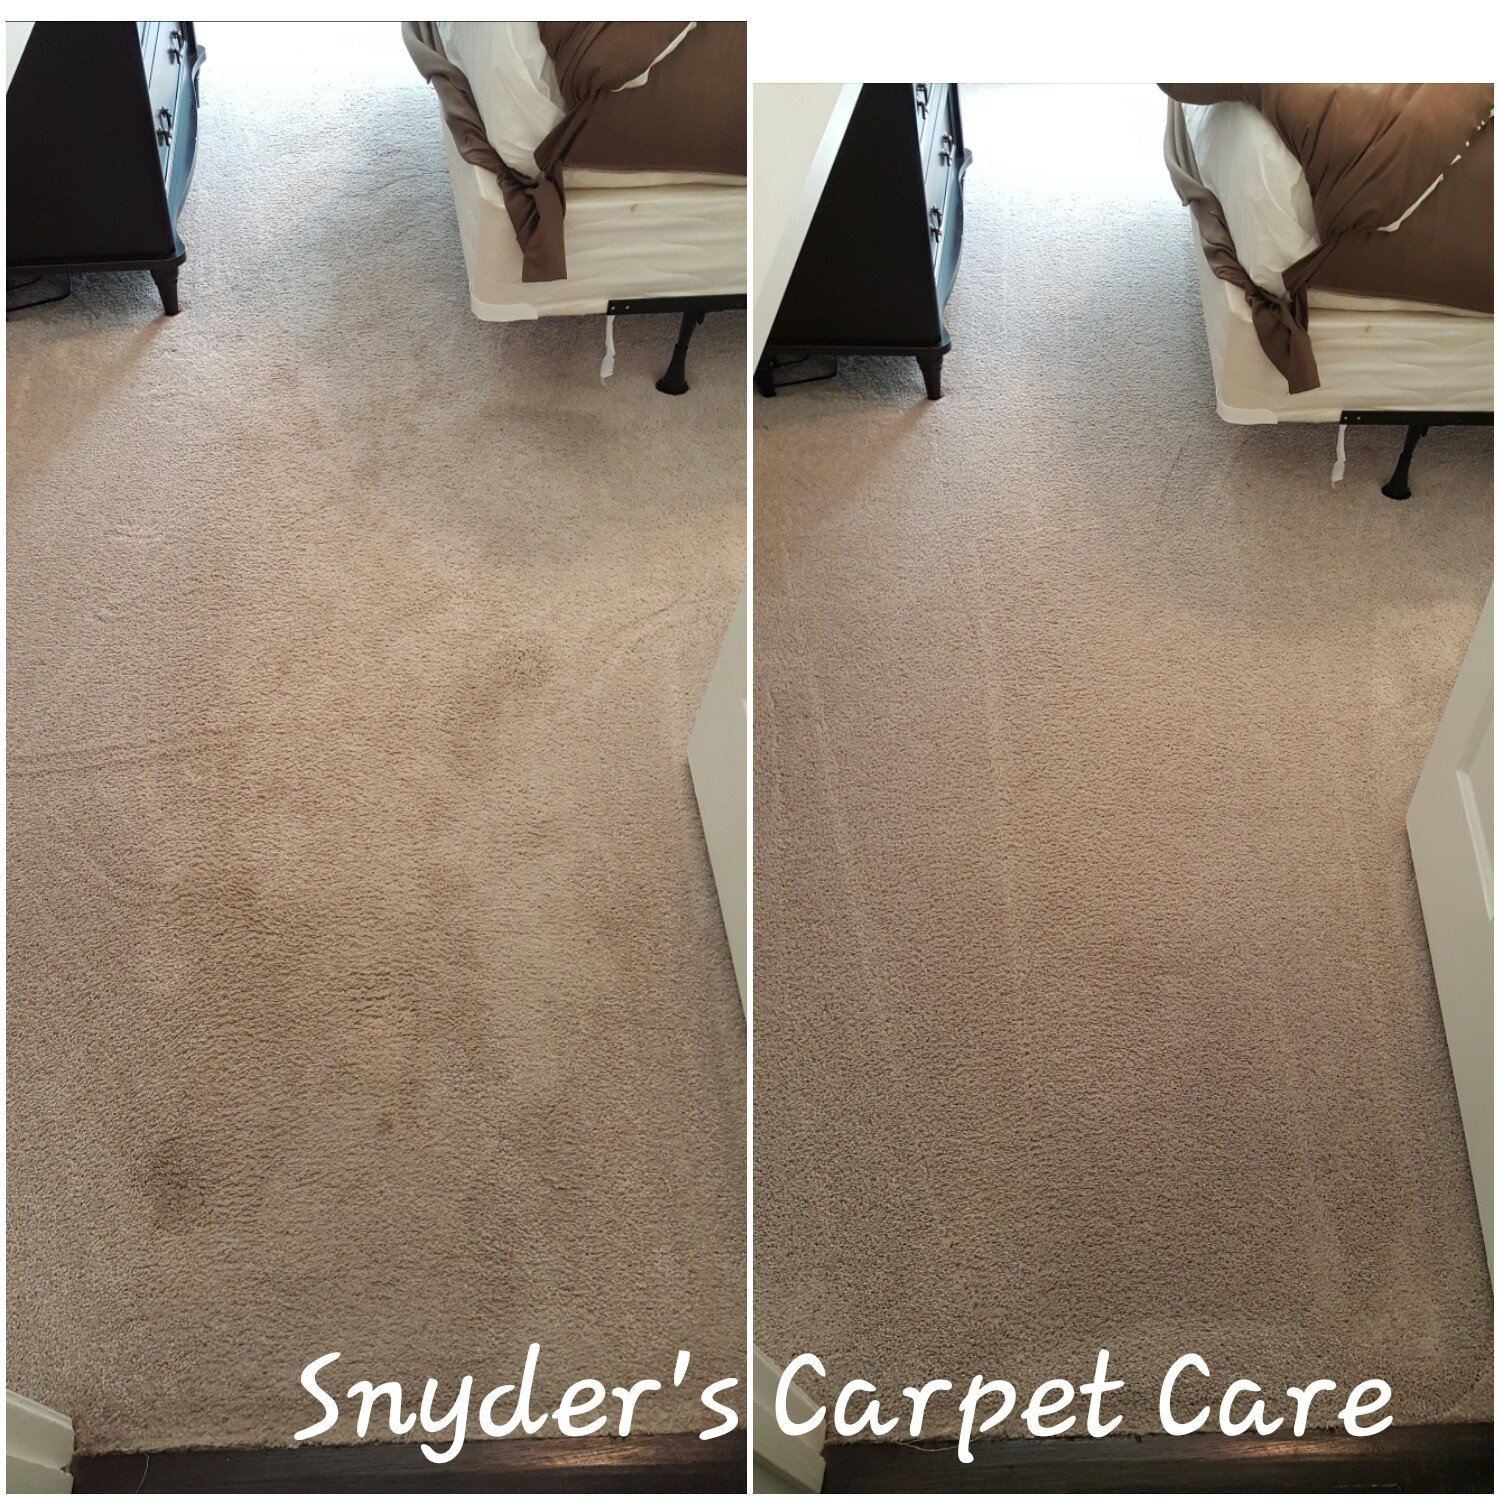 Carpet Cleaning Carpet Cleaning Services Tile And Grout Cleaning Dallas Tx Fort